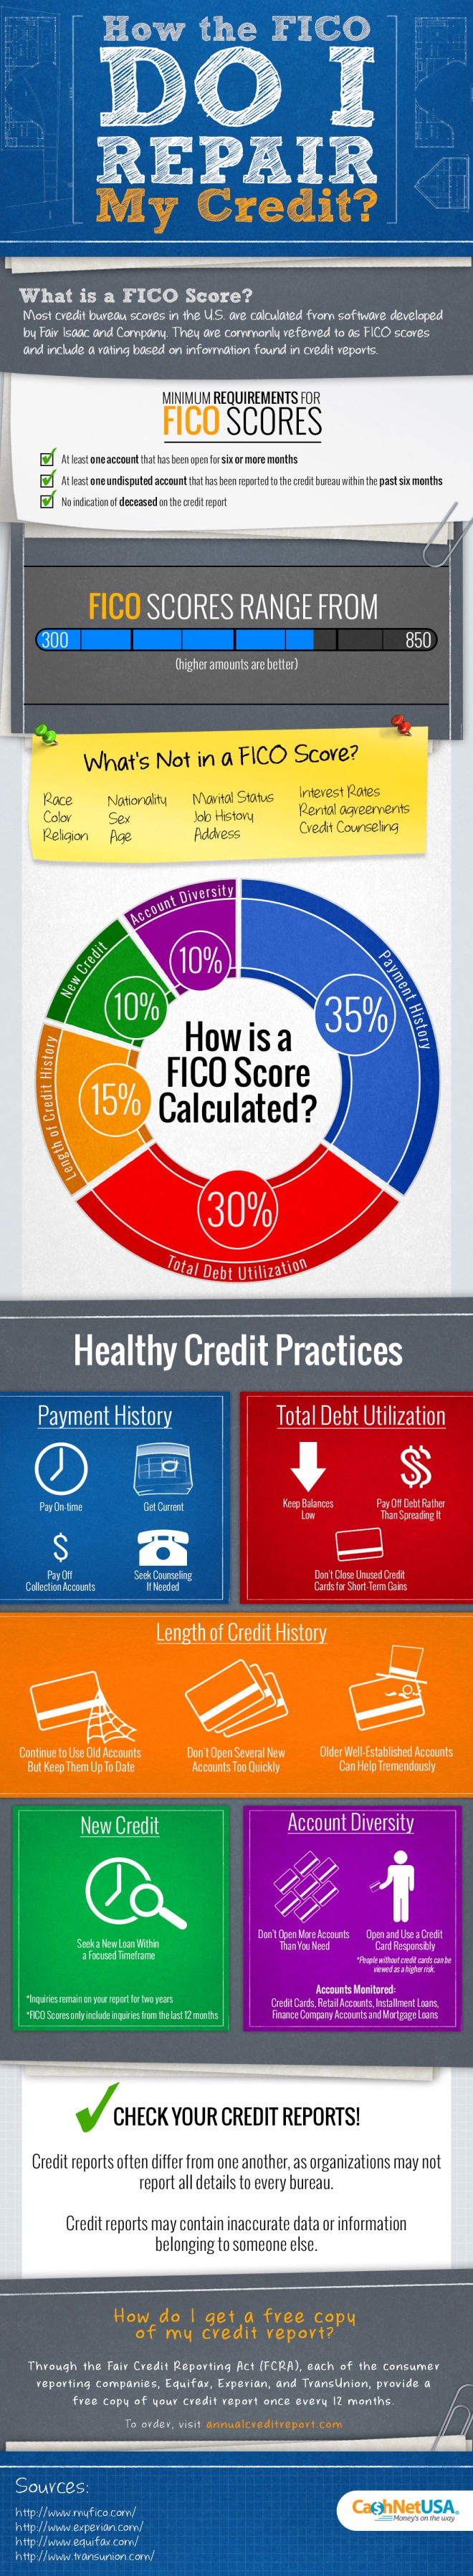 cashnetusa-credit-repair-infographic